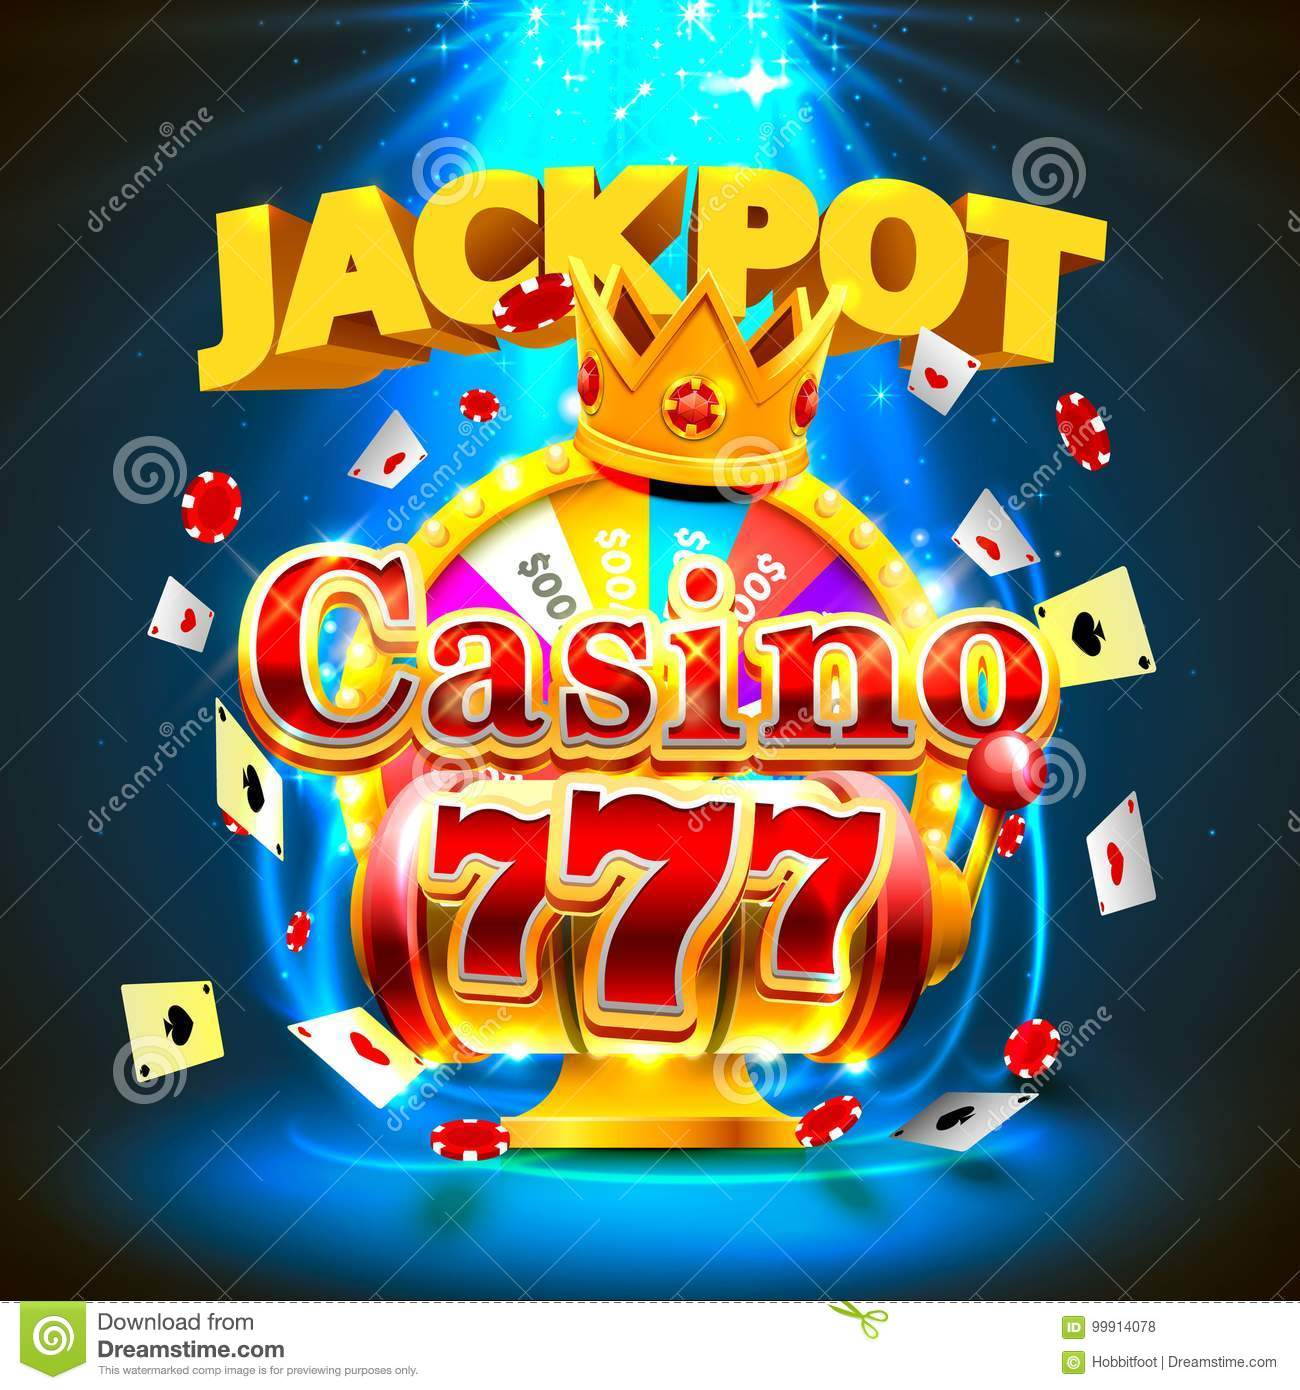 Jackpot Casino 777 Slots And Fortune King Banner Stock Vector Illustration Of Lucky Casino 99914078